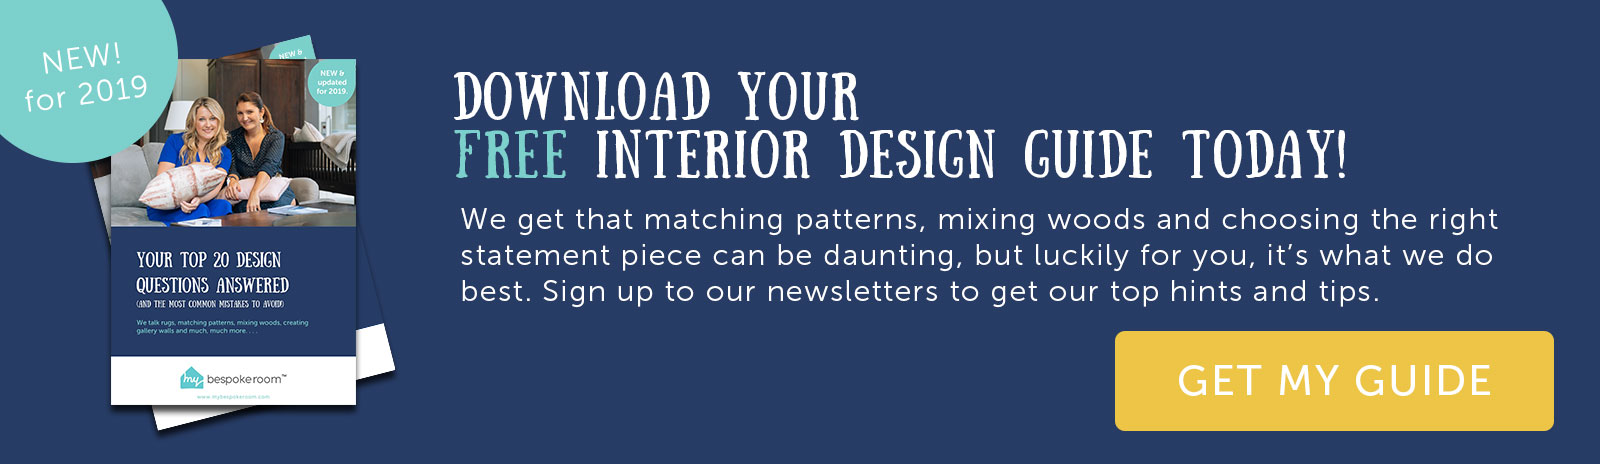 Download your free guide to interior design today!